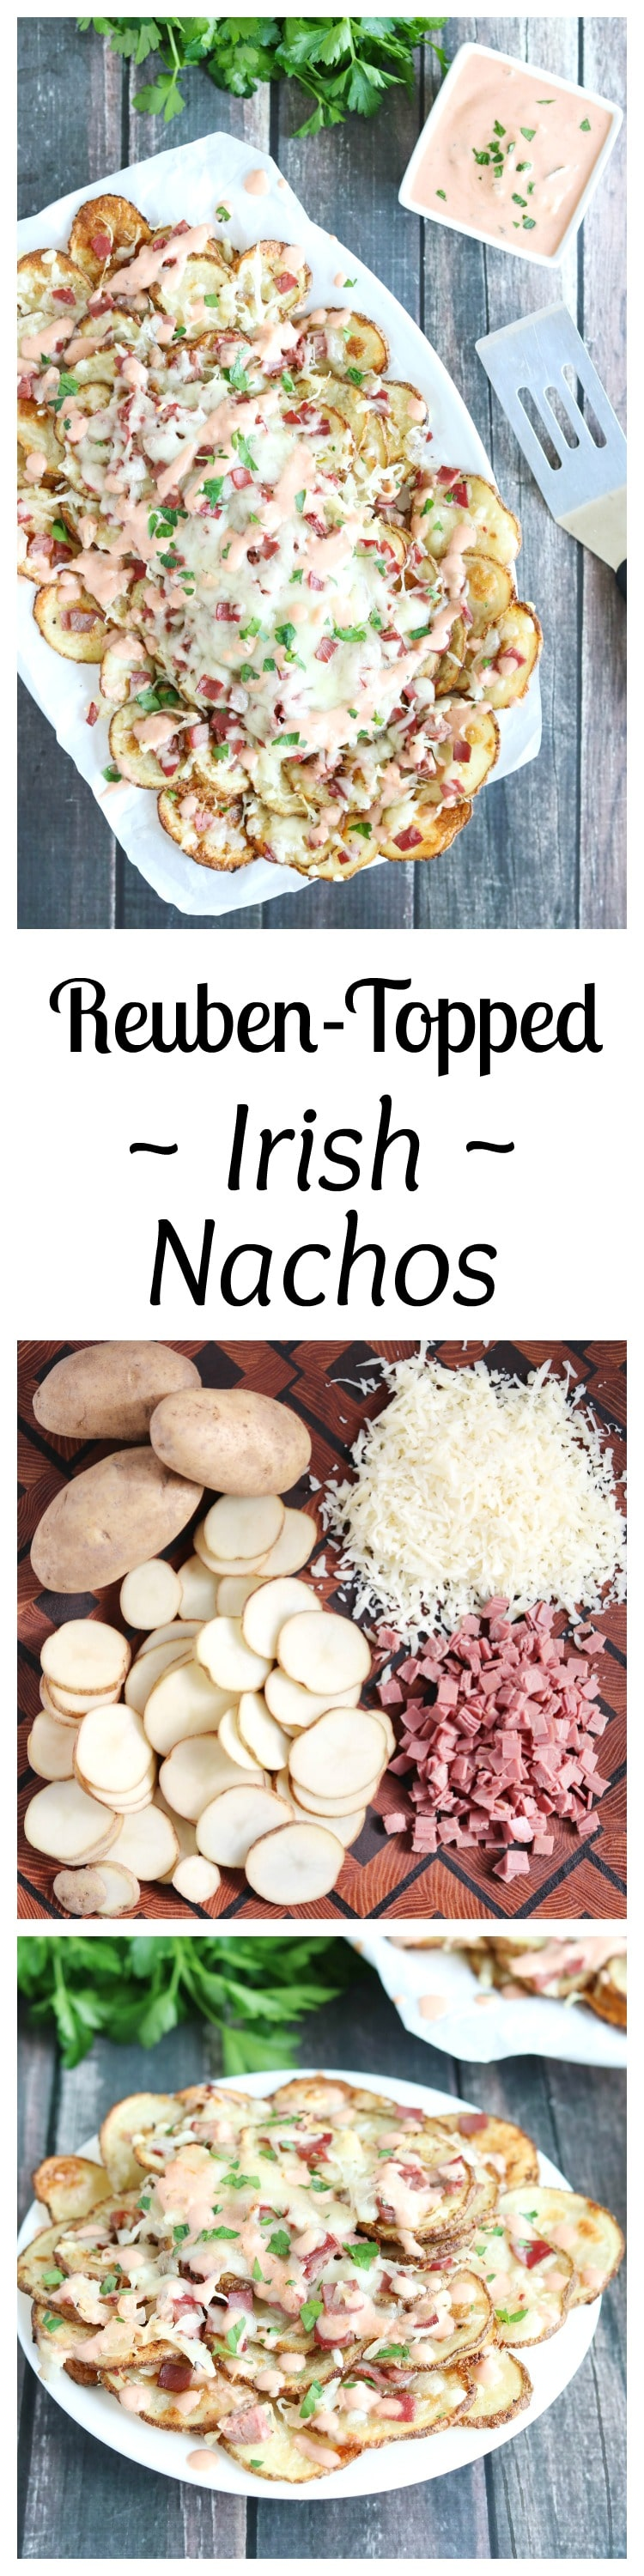 These Reuben-Topped Irish Nachos feature seasoned, oven-baked potato chips, plus delicious toppings loaded with the ever-popular flavors of a reuben sandwich! Easy to make, seriously delicious! | www.TwoHealthyKitchens.com